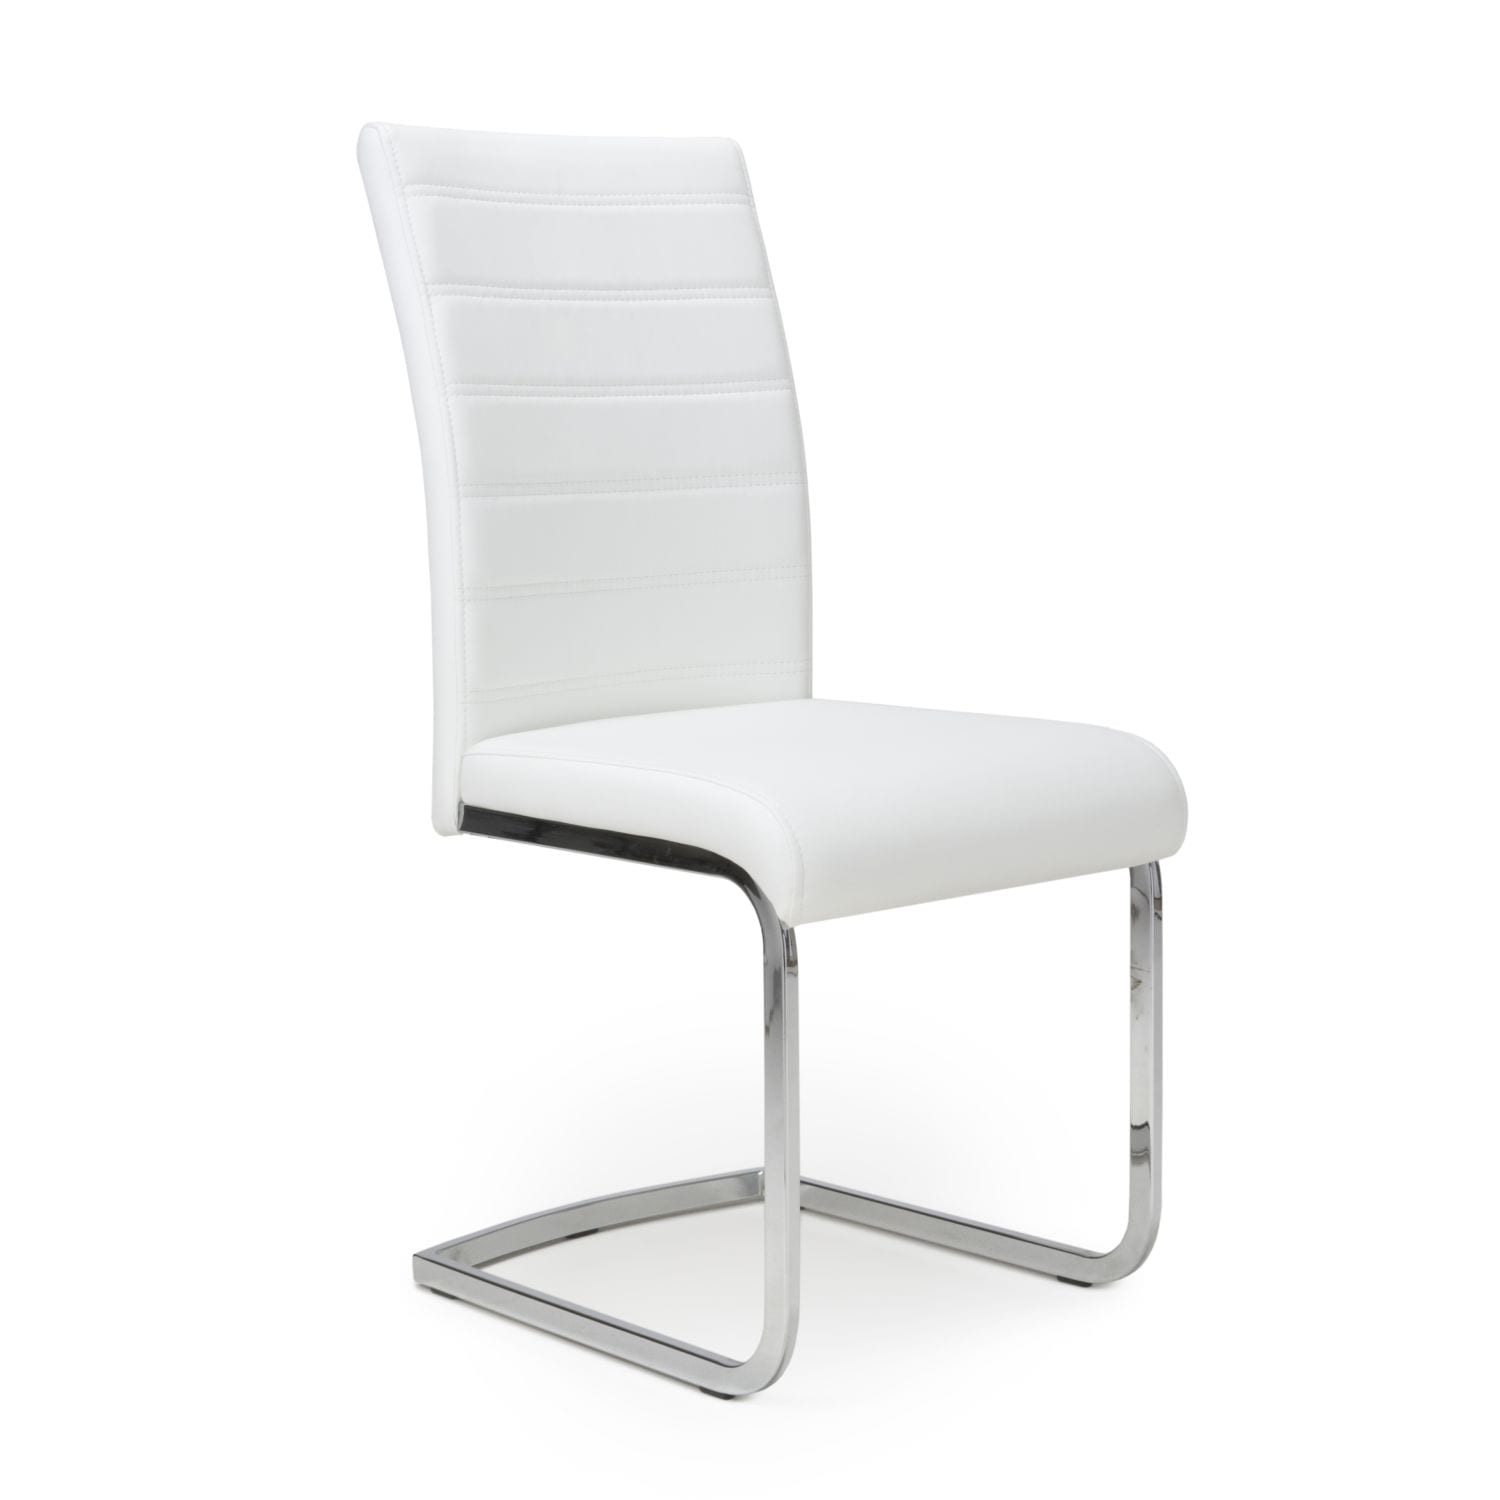 Kally Leather Effect White Chair